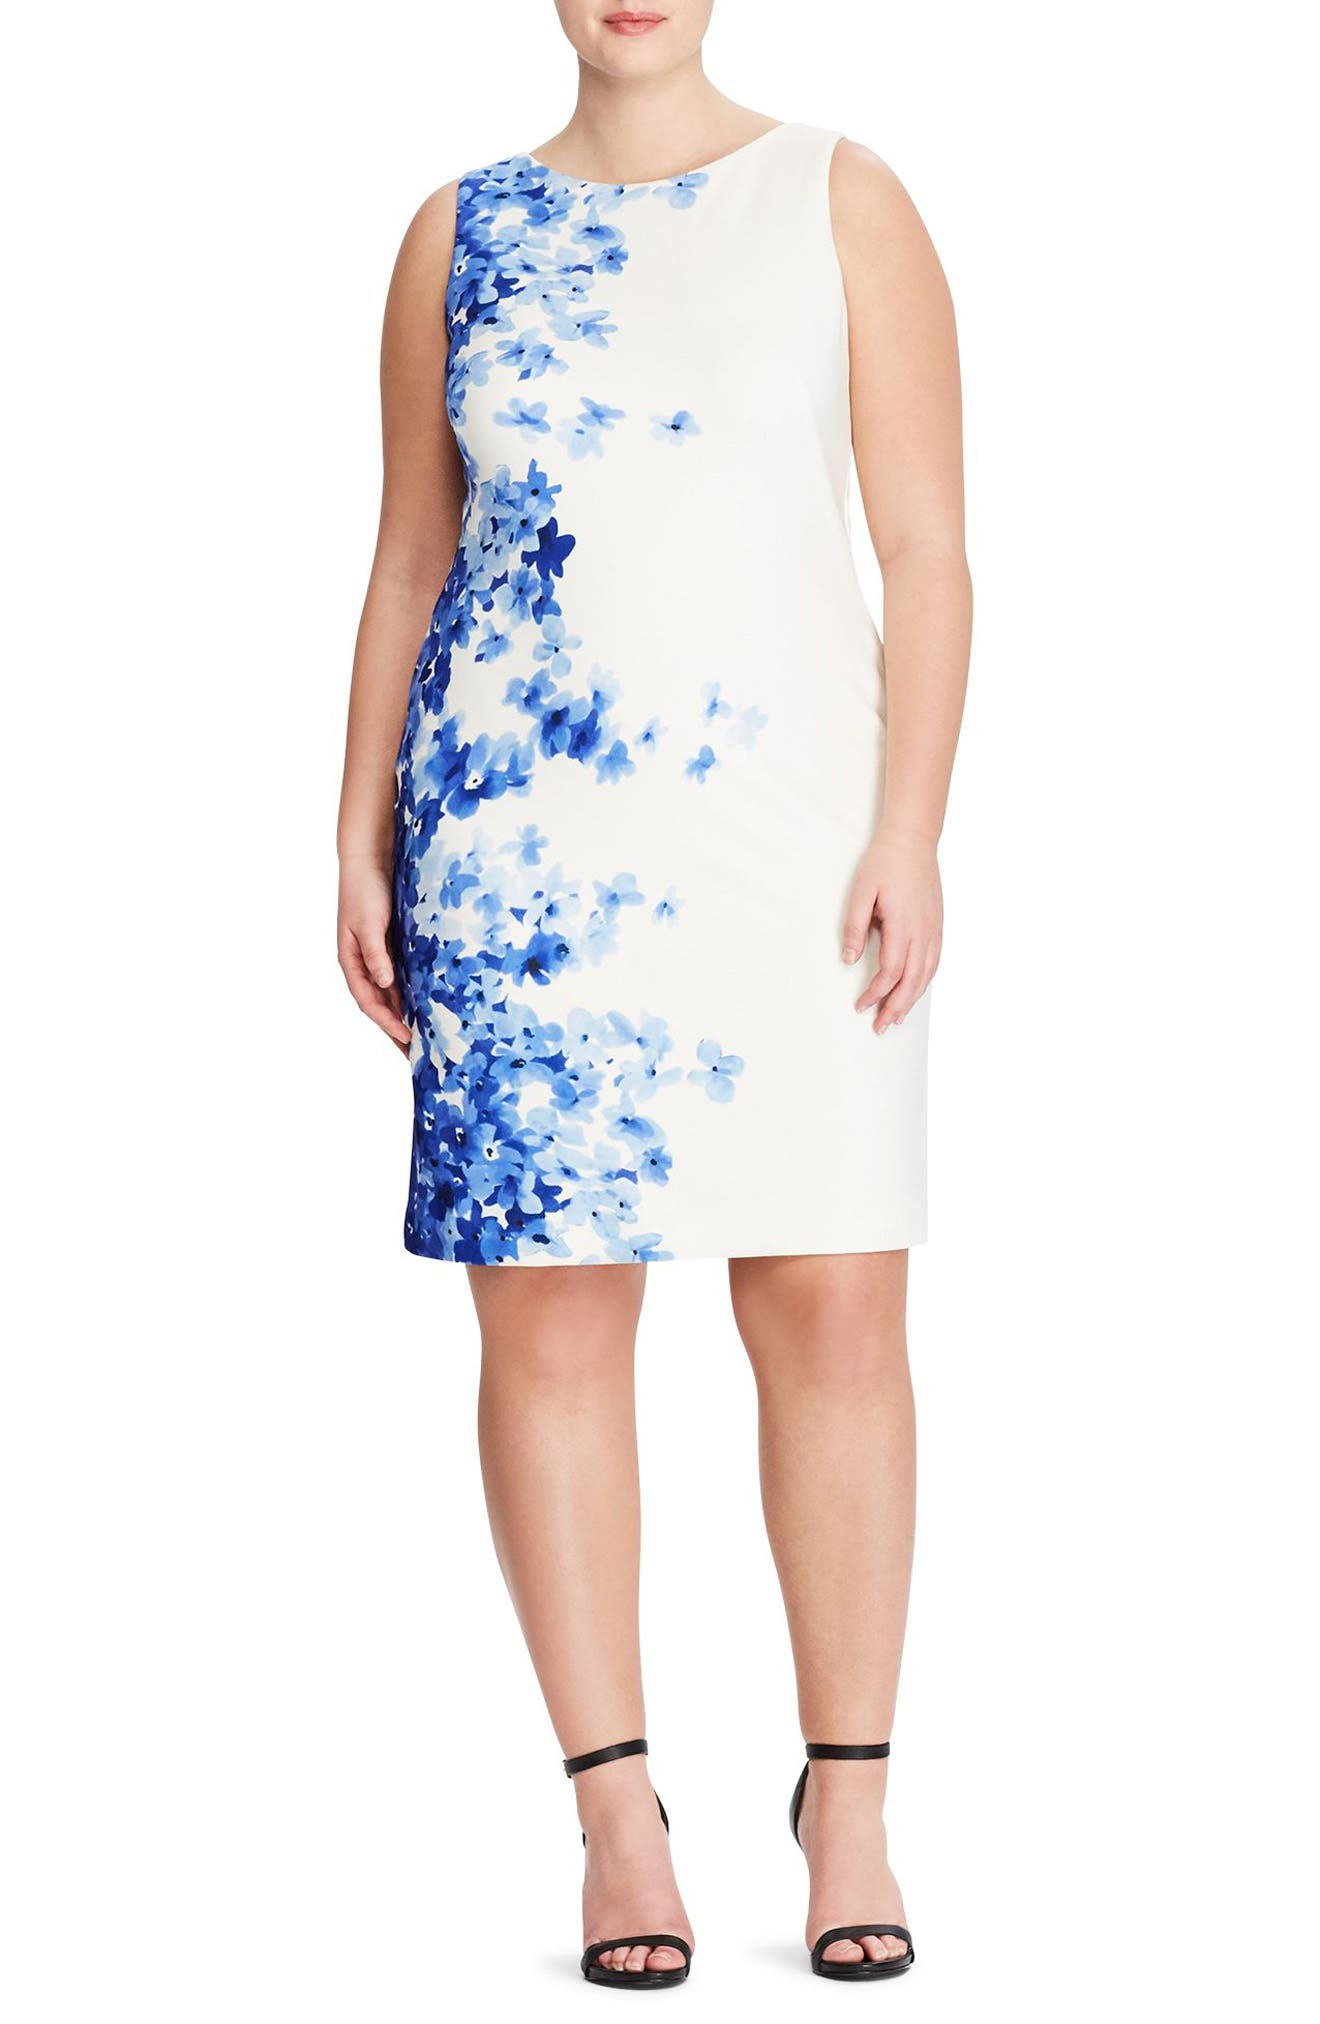 Toralina Caspian Sea Border Sheath Dress,                             Main thumbnail 1, color,                             Col. Cream-Blue-Multi